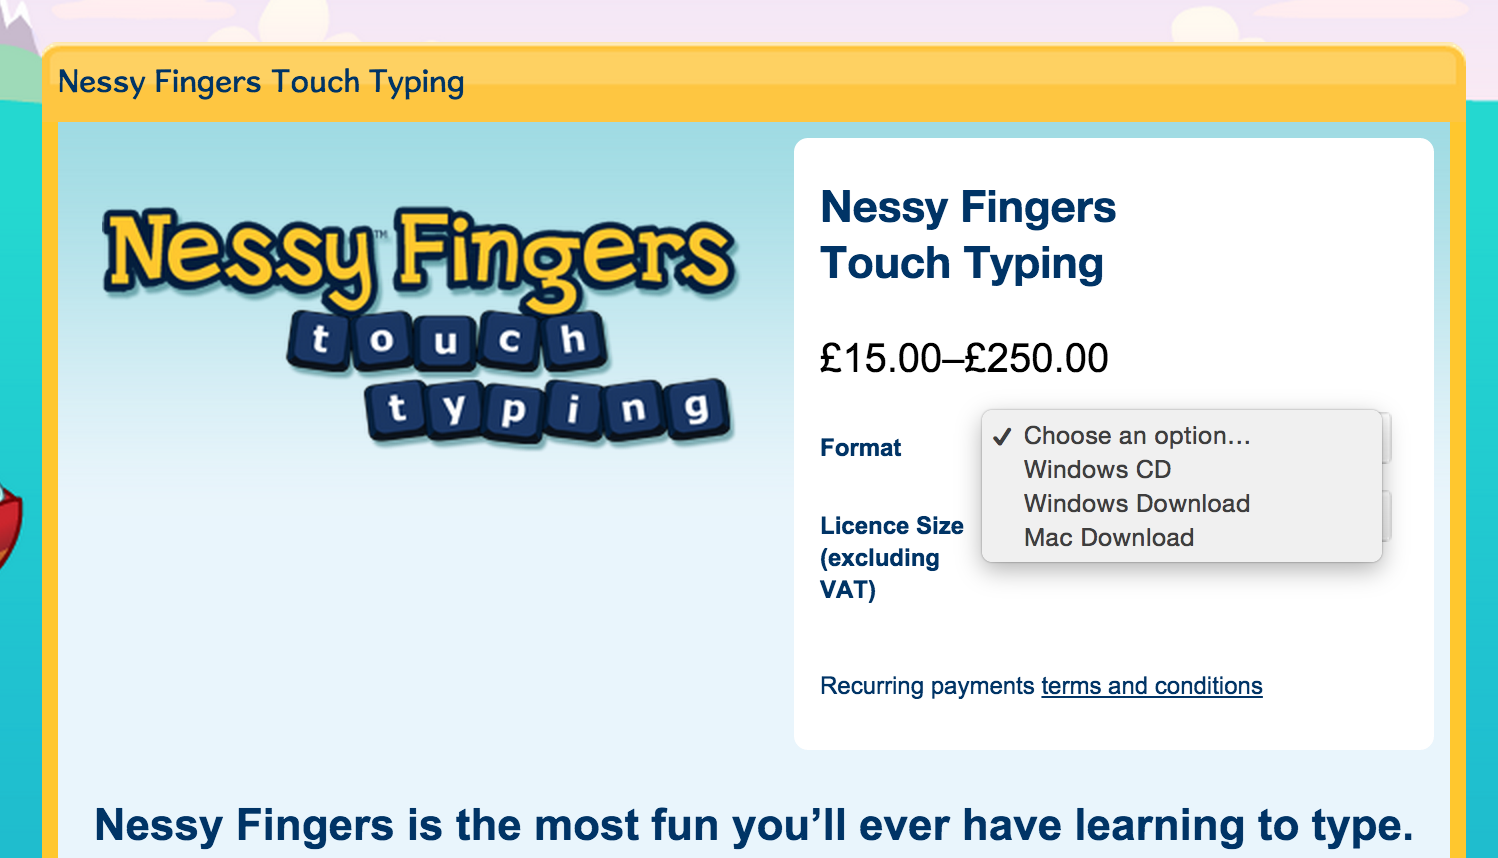 Nessy Fingers Touch Typing